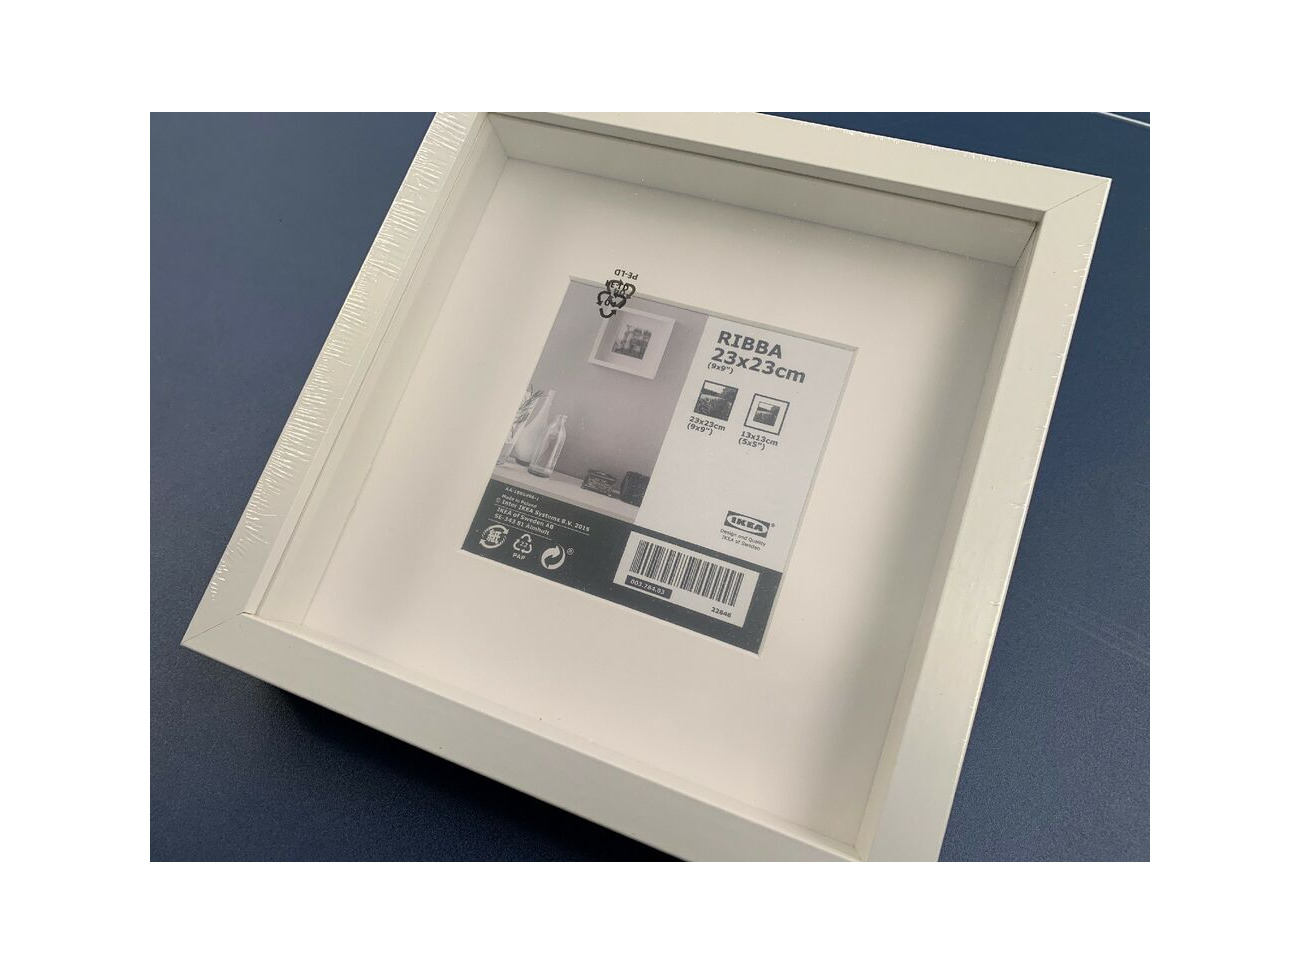 Ikea Ribba 23x23cm 9x9in Wooden Square